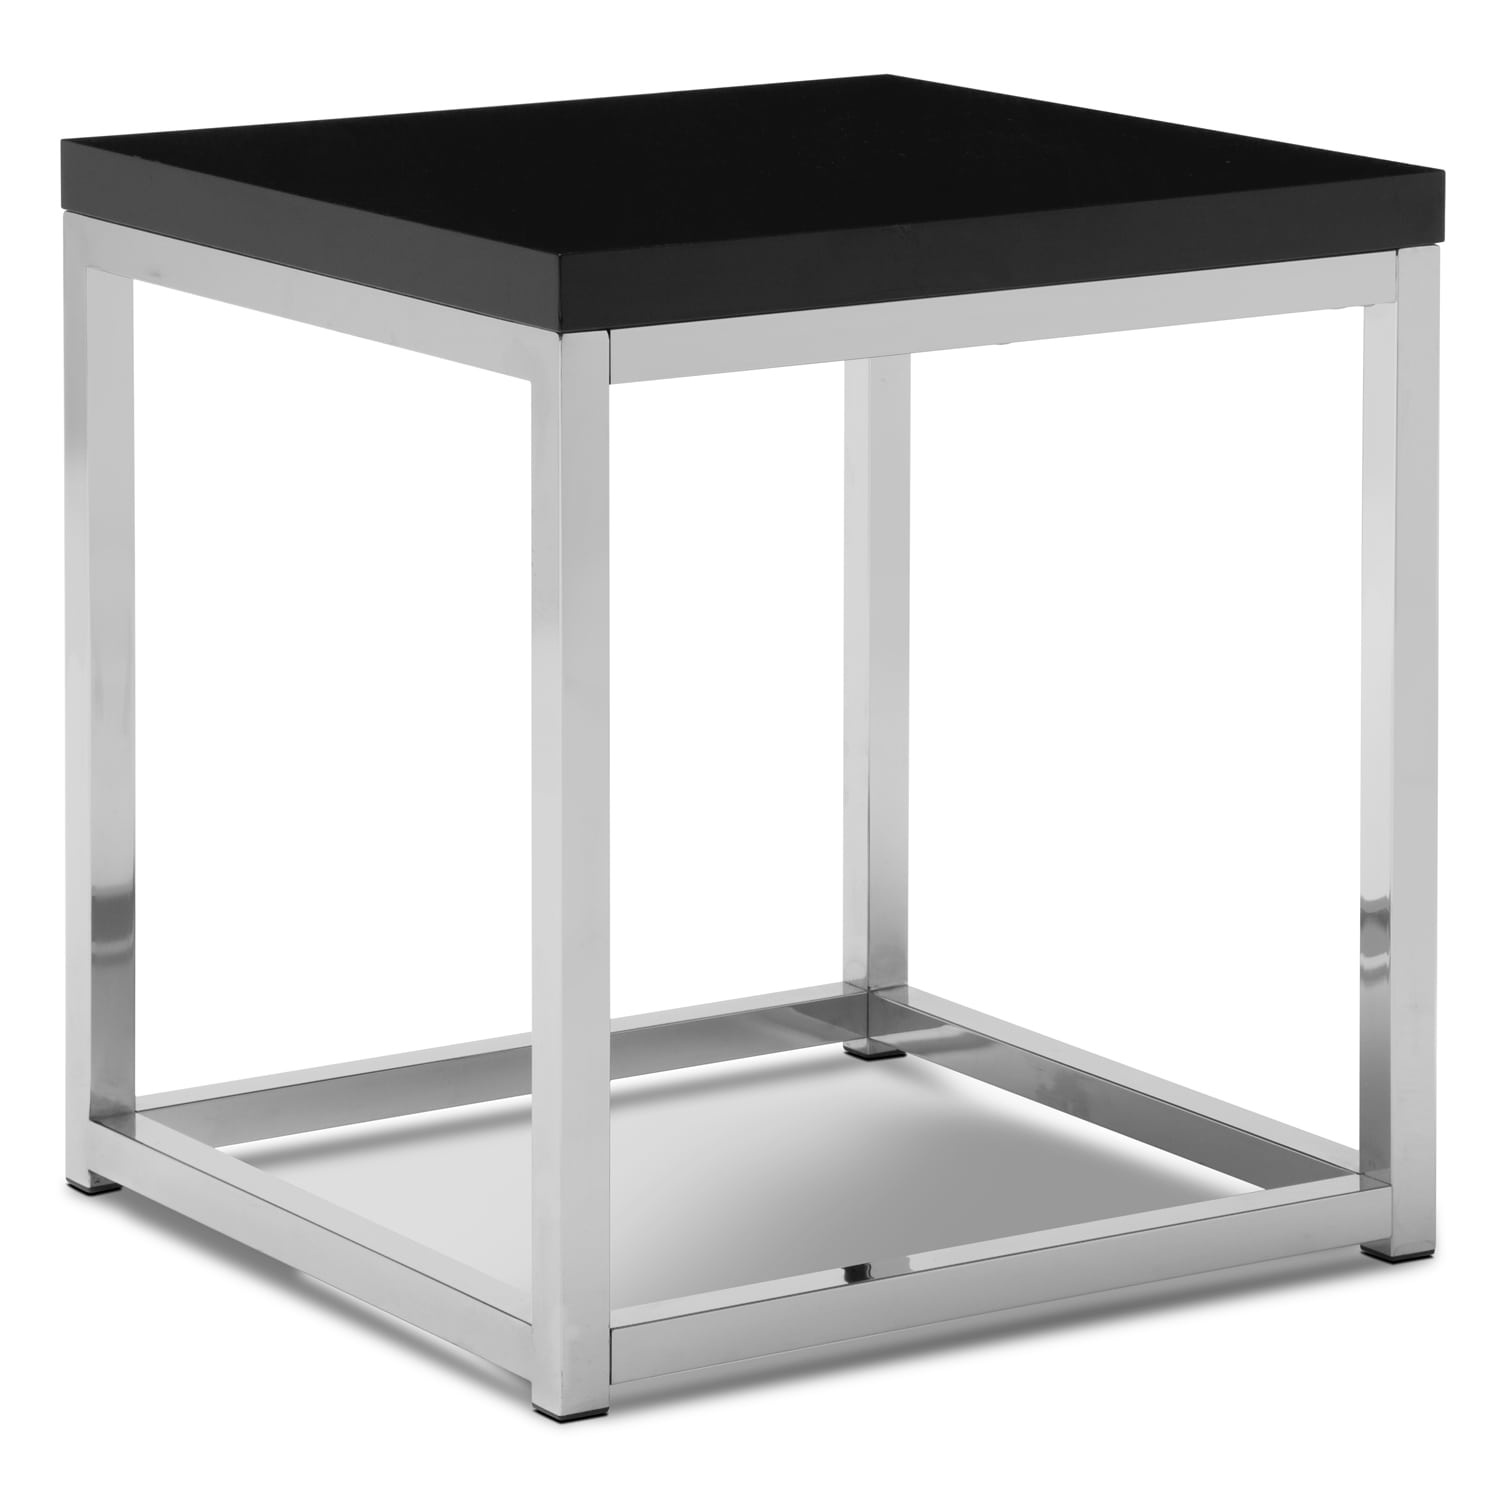 Cielo End Table - Chrome and Black